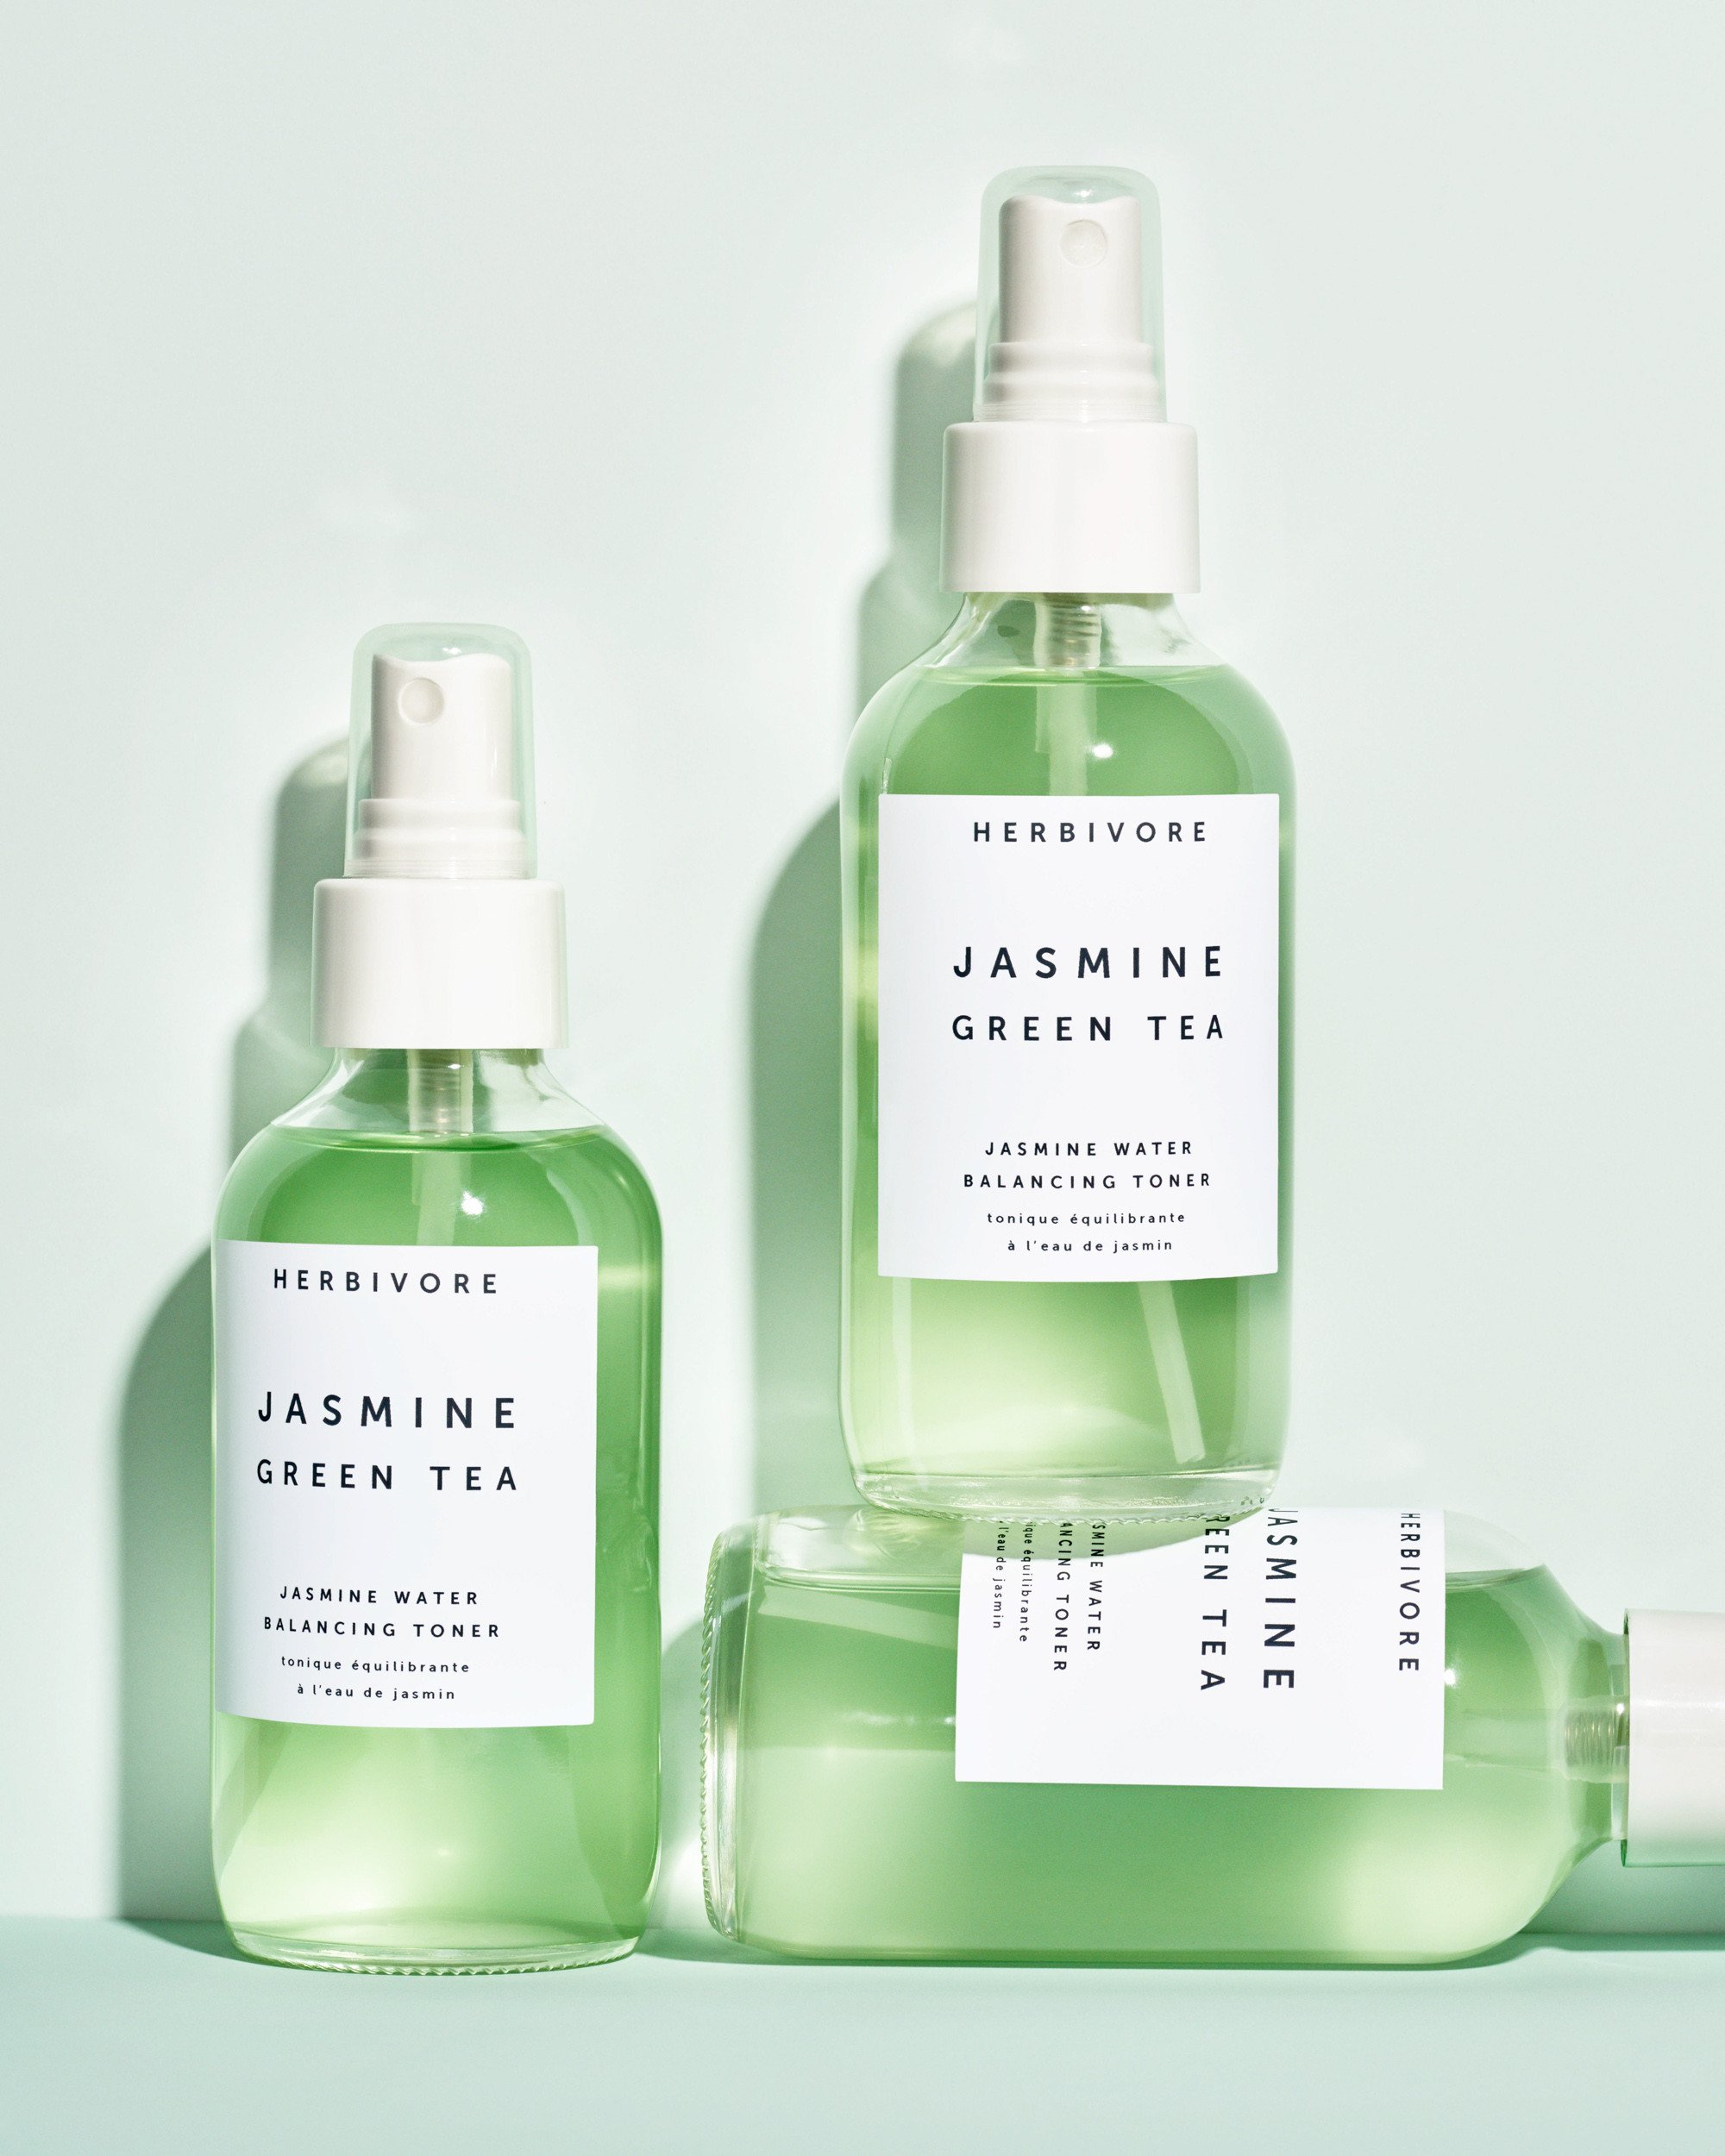 Jasmine green tea balancing toner  - Official picture